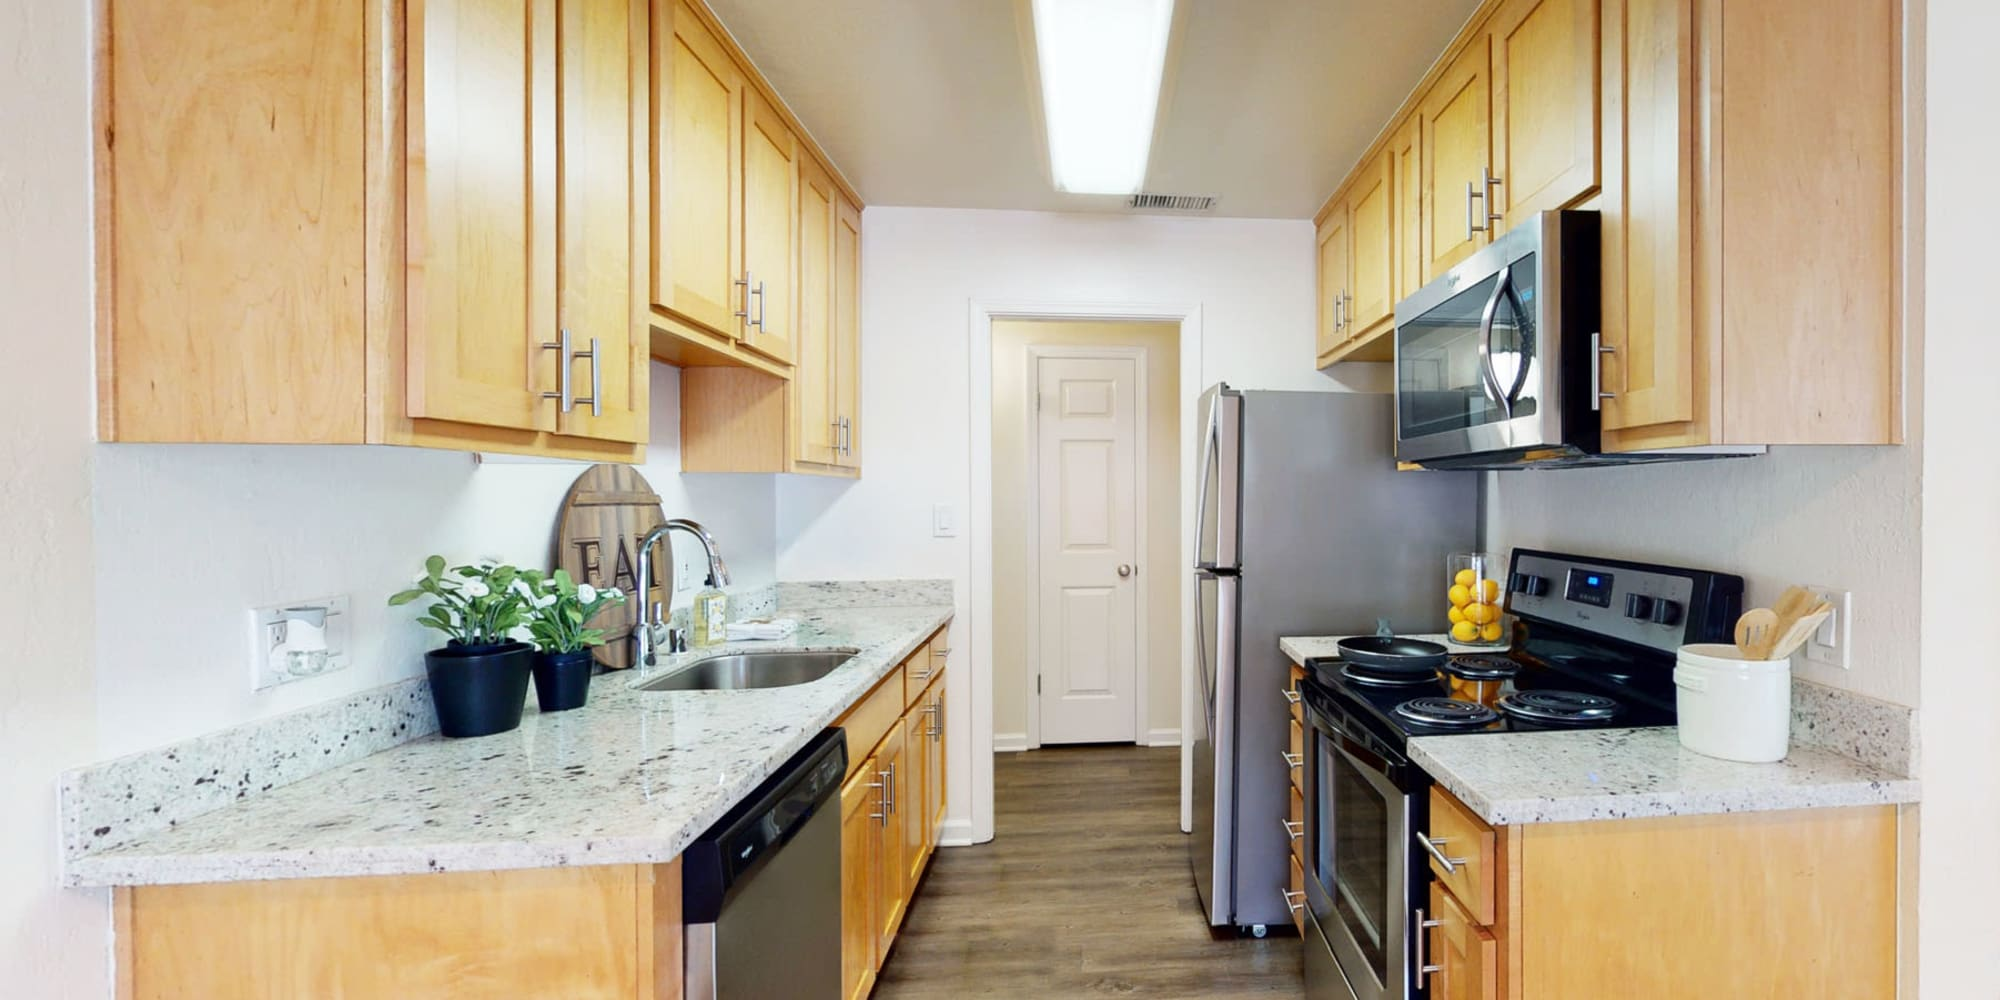 Ample cupboard and storage space in a model home's kitchen at Pleasanton Glen Apartment Homes in Pleasanton, California